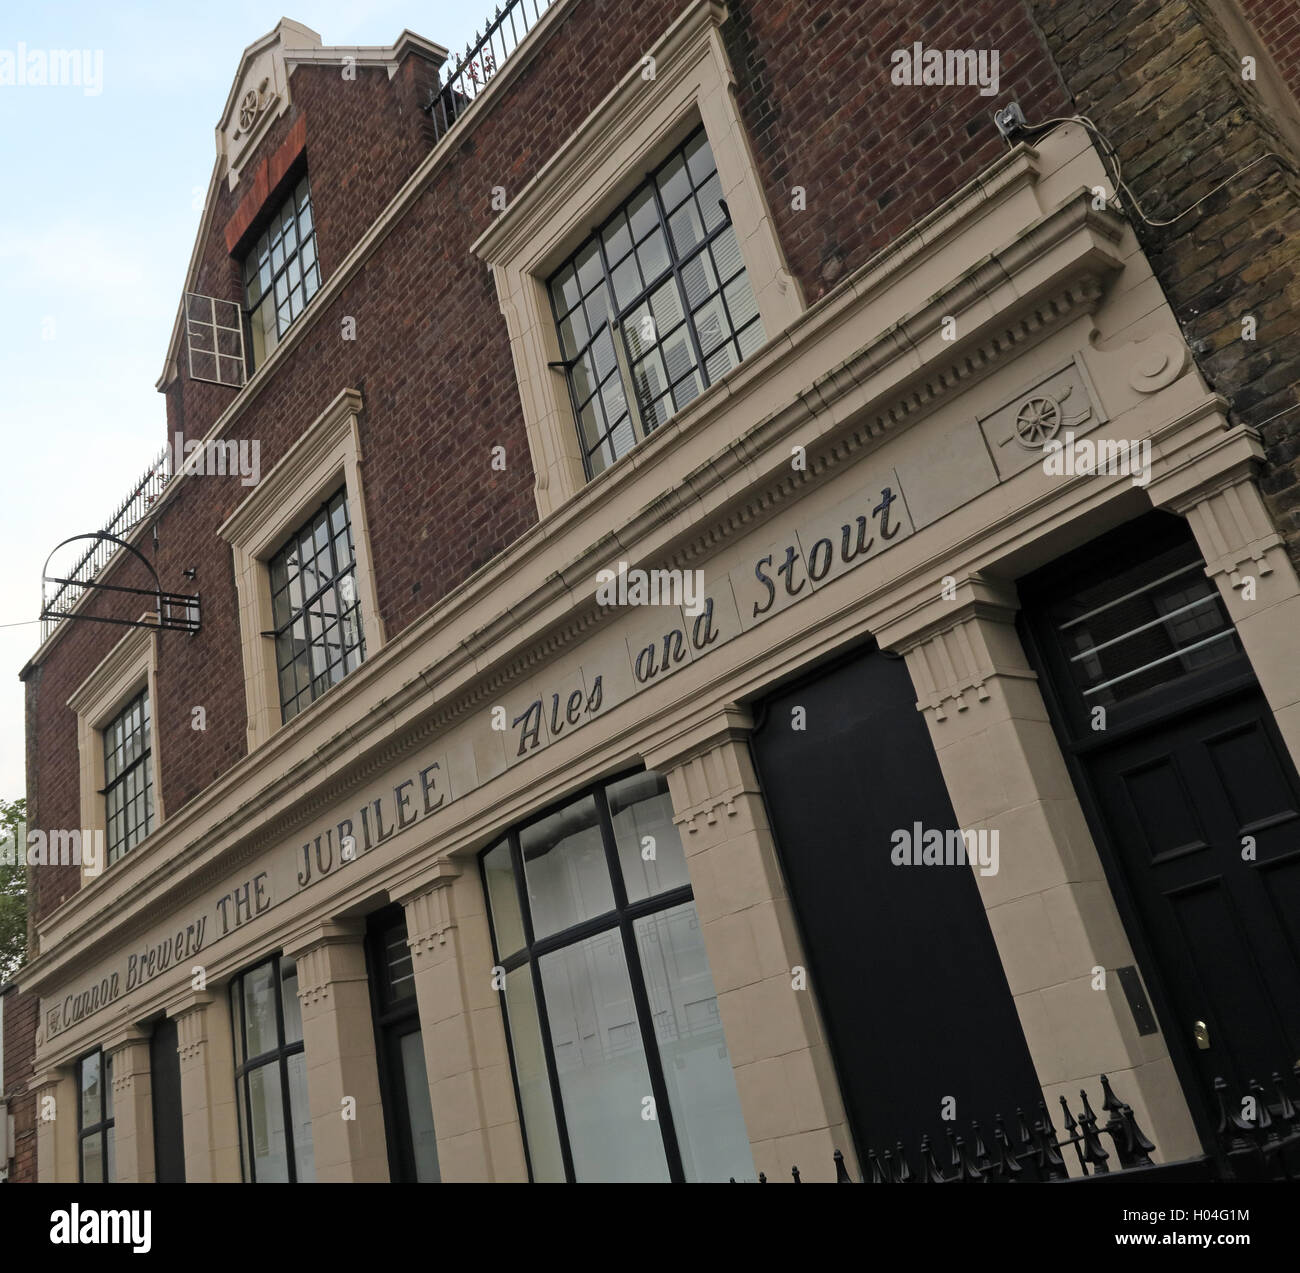 The Jubilee Pub, Ales & Stout building, Somers Town, Euston,Camden, London Stock Photo